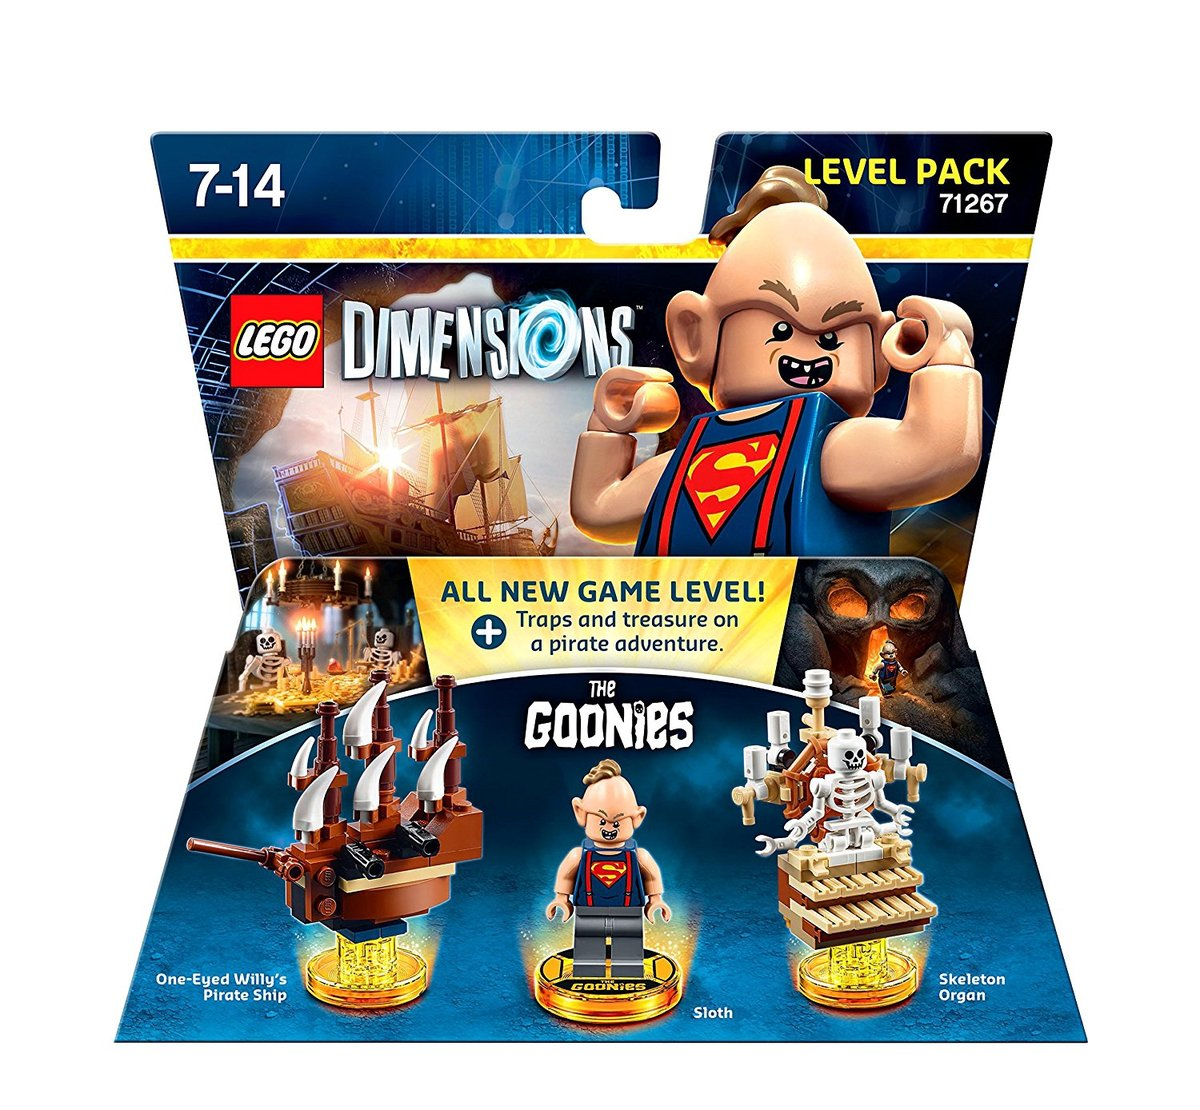 - Level Pack - The Goonies (Multiplatform)